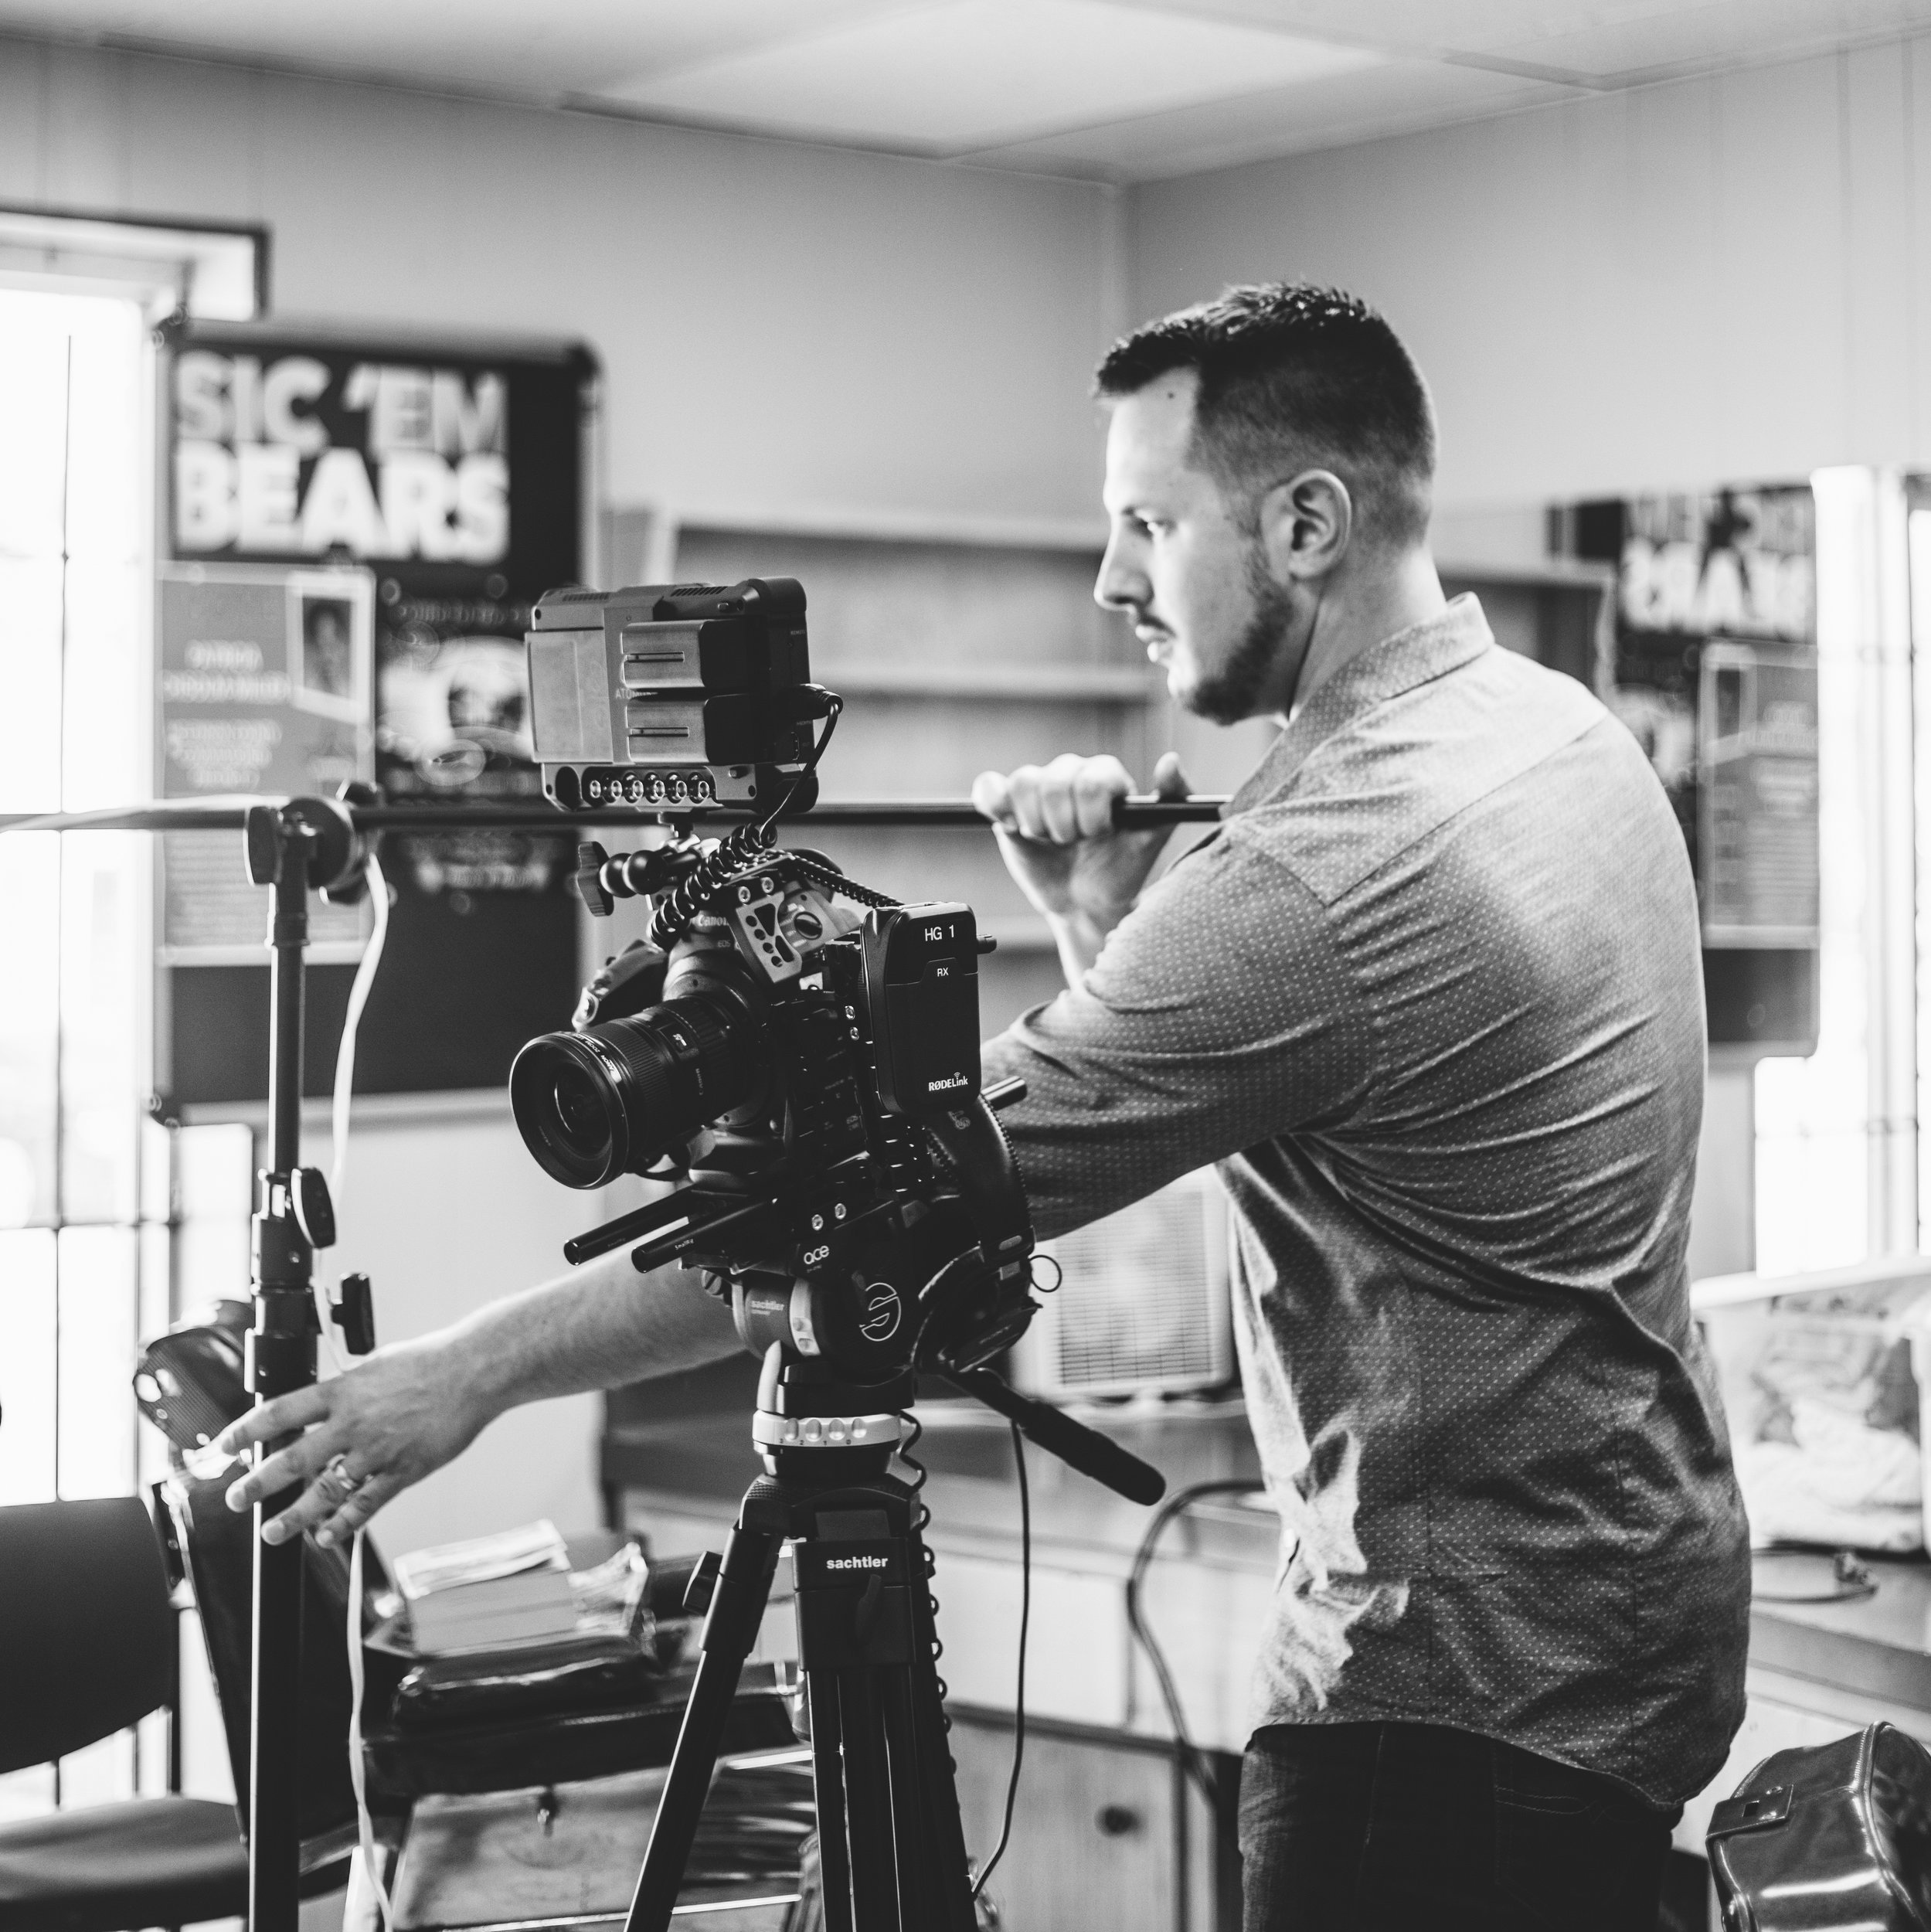 Jake McGhee, an Air Force veteran who has found a calling making commercials for some of Waco's biggest brands.